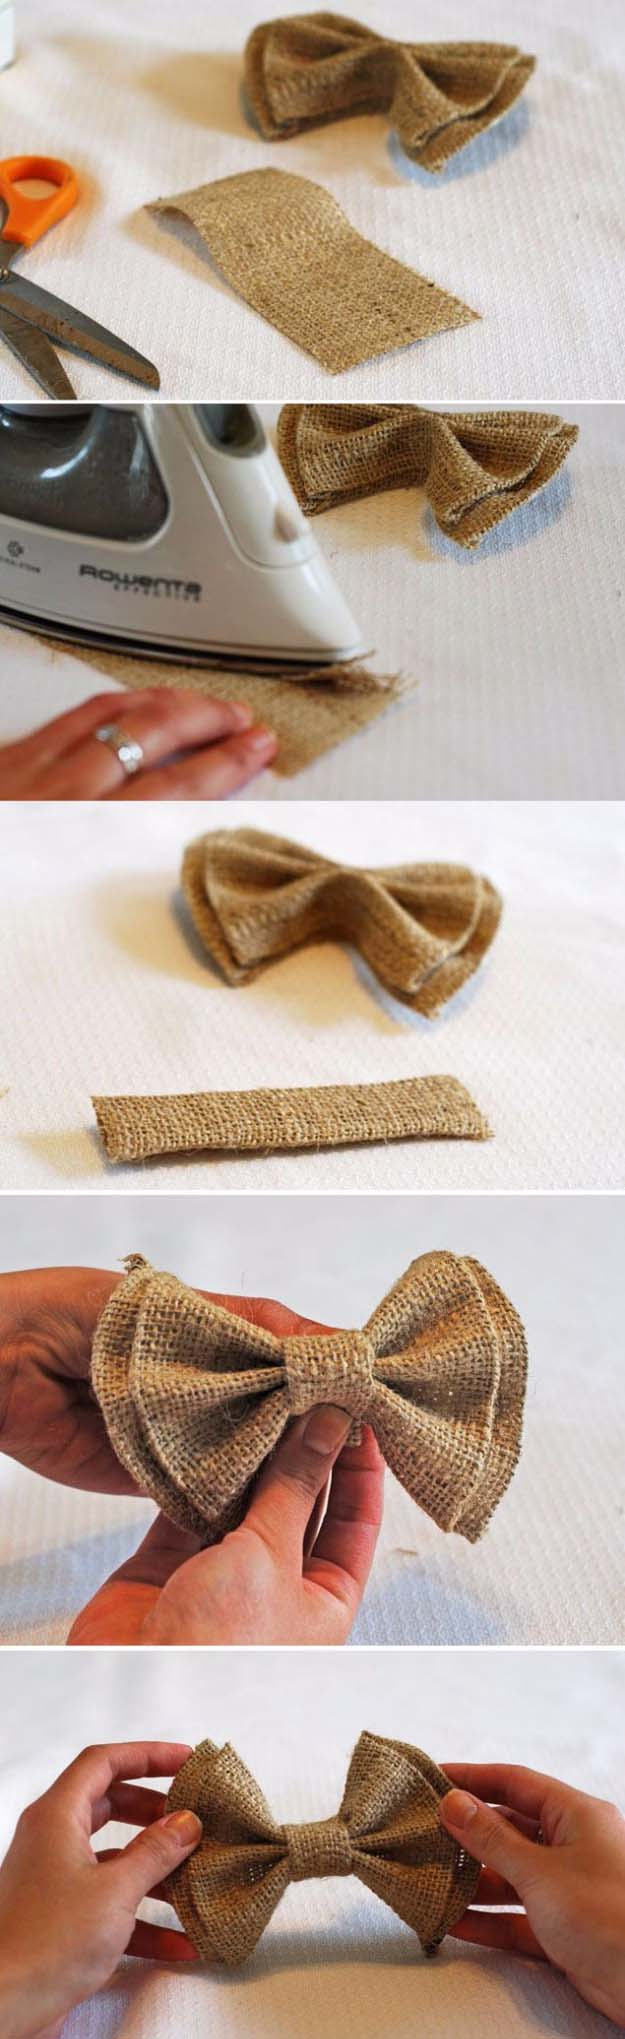 50 creative diy projects made with burlap diy projects with burlap and creative burlap crafts for home decor gifts and more solutioingenieria Images